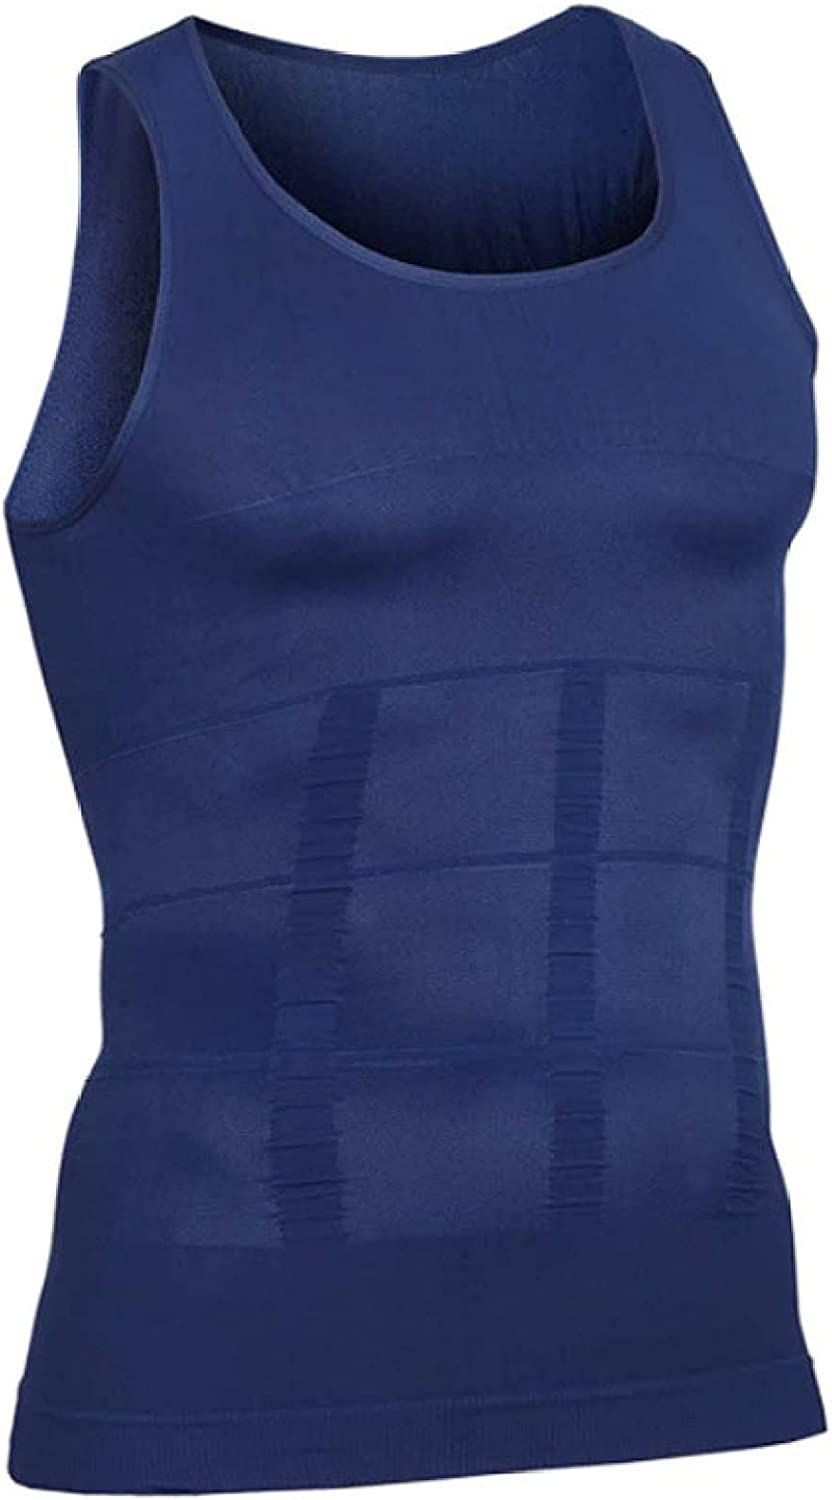 ChyJoey Seamless Shapewear Tank Top for Men Body Slimming - Breathable Compression Shirts Waist Trainer Underwear Sleeveless